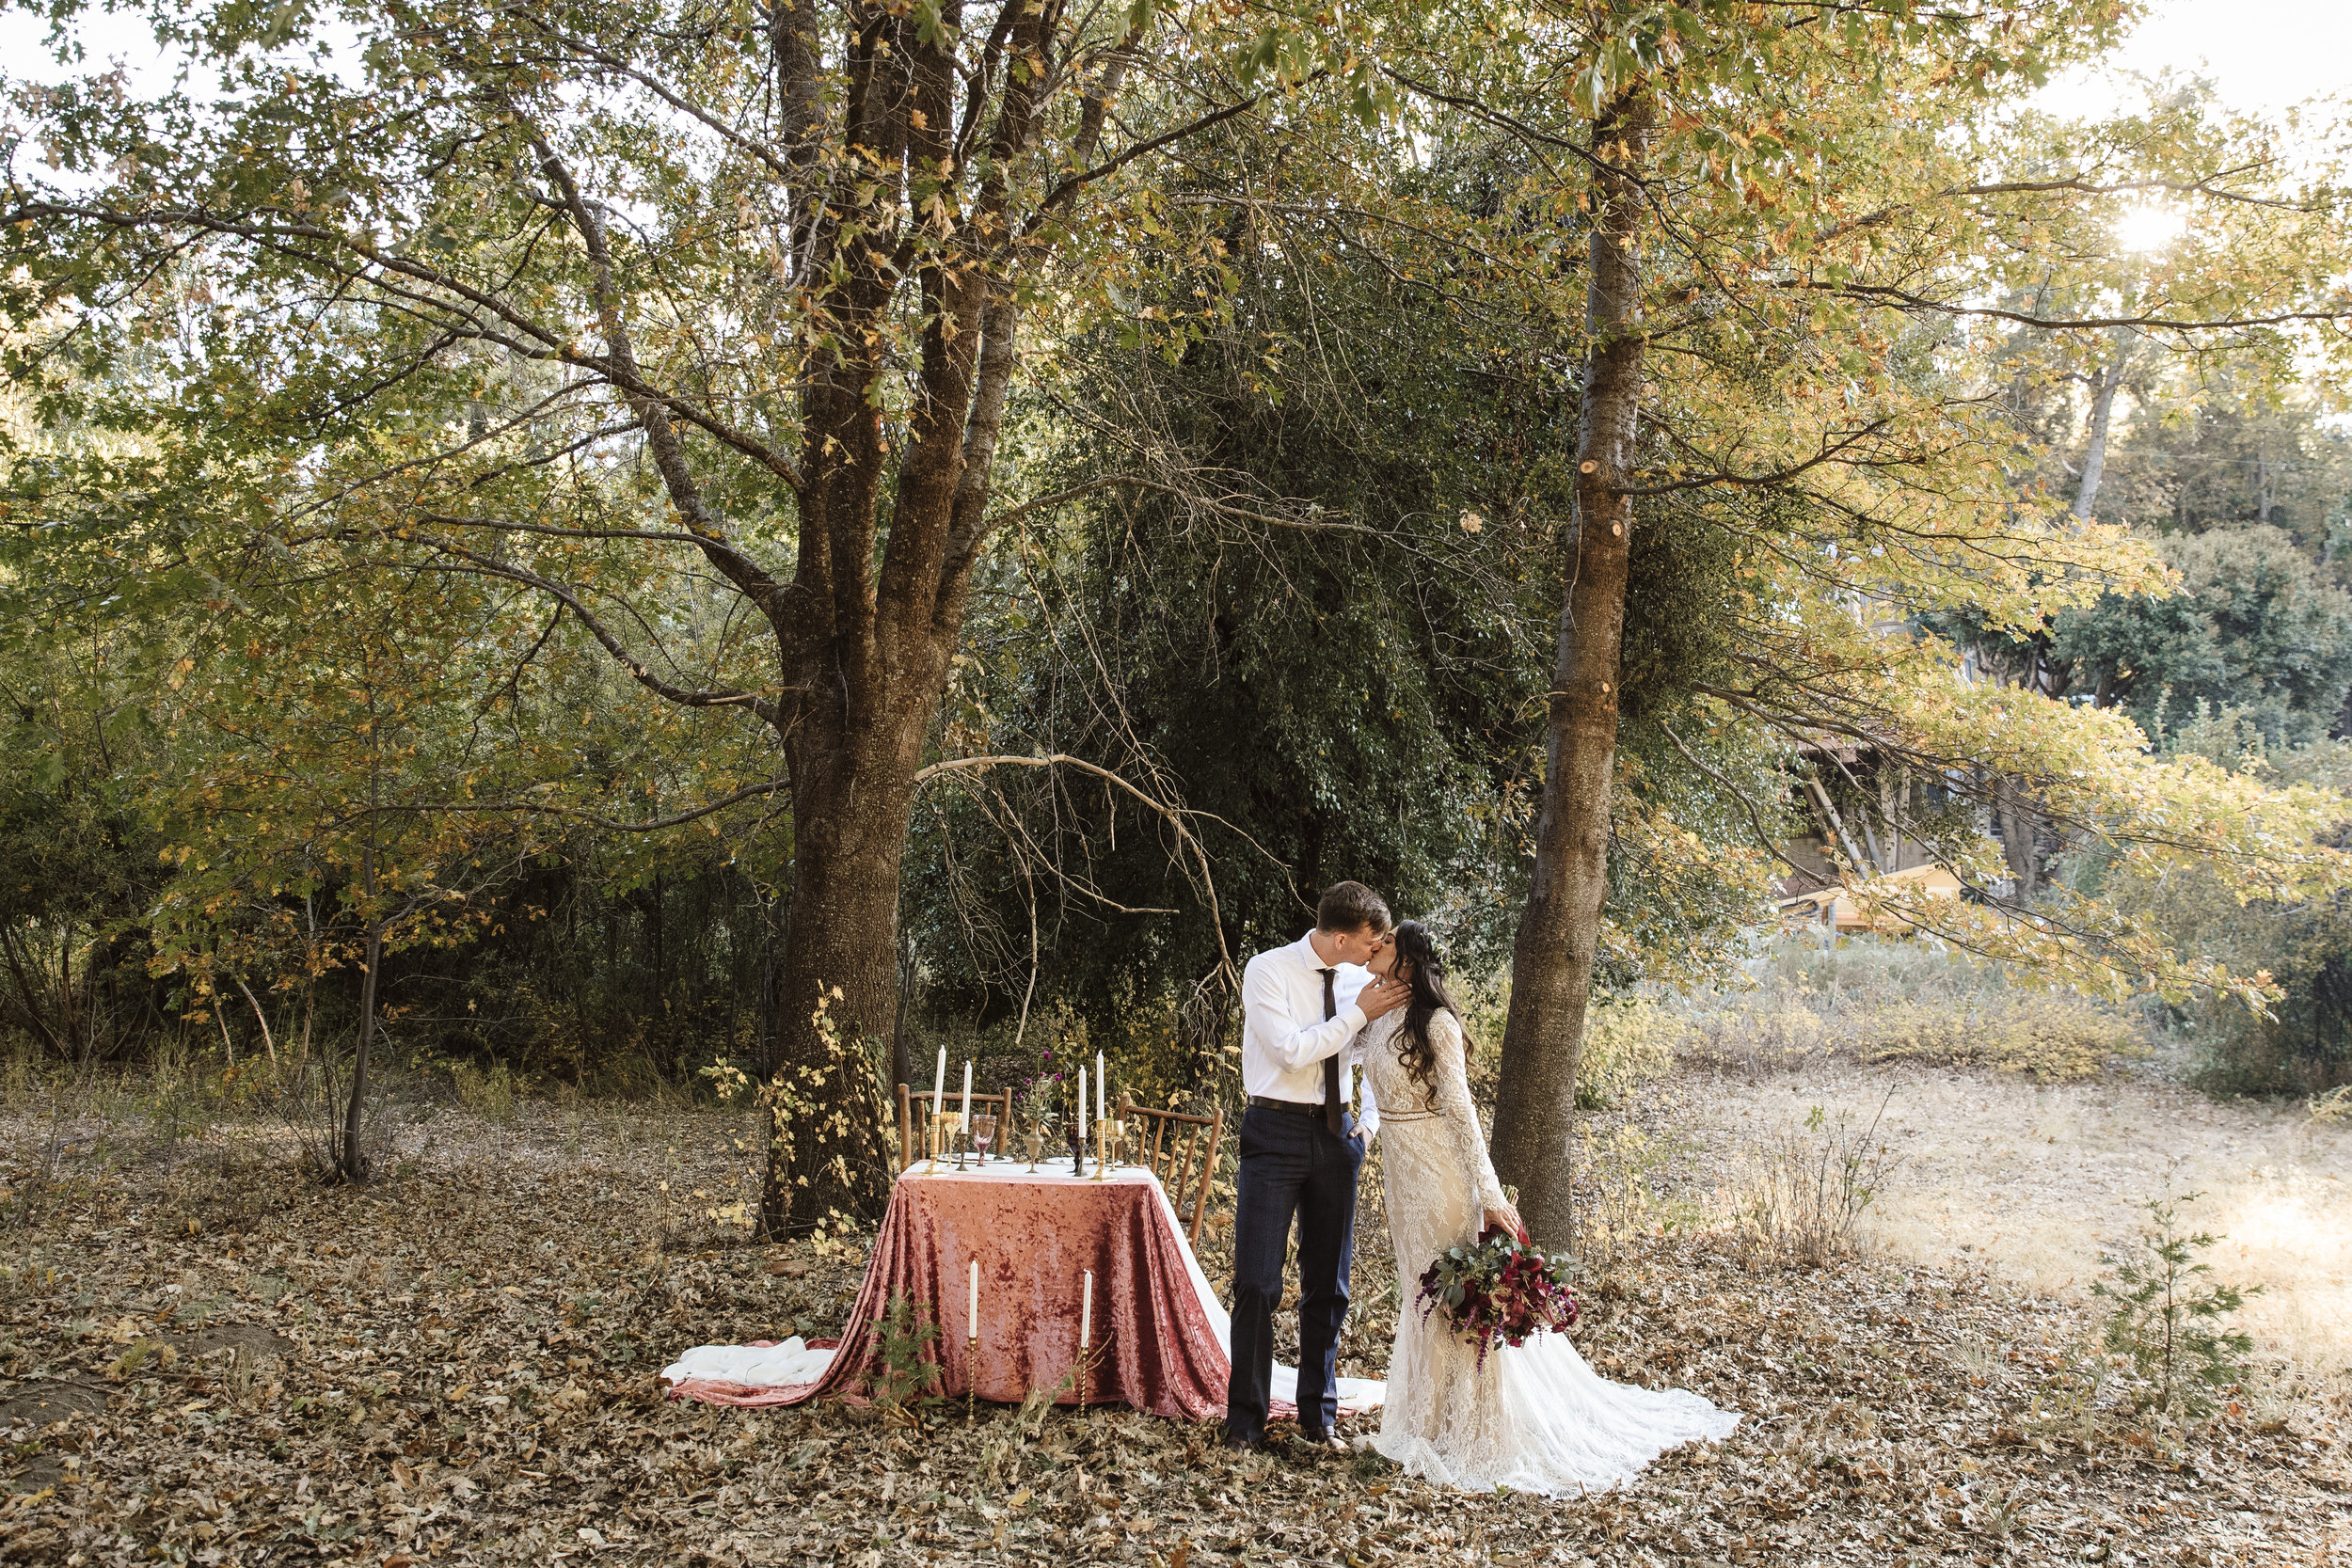 A WOODLAND WEDDING. - A PRIVATE OASIS TUCKED AWAY IN THE WOODS.